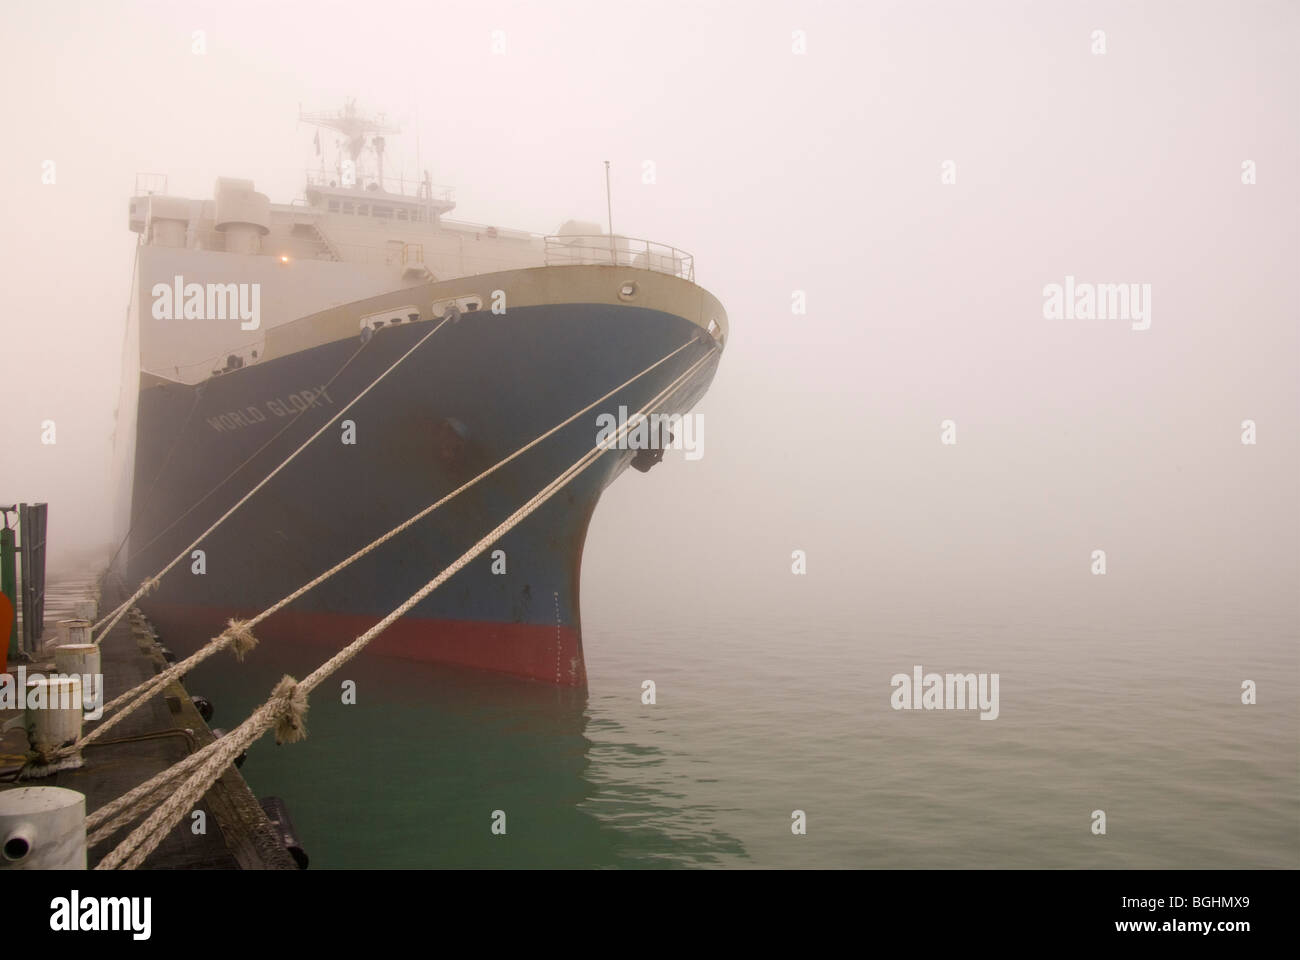 A car ship in port on a foggy day - Stock Image